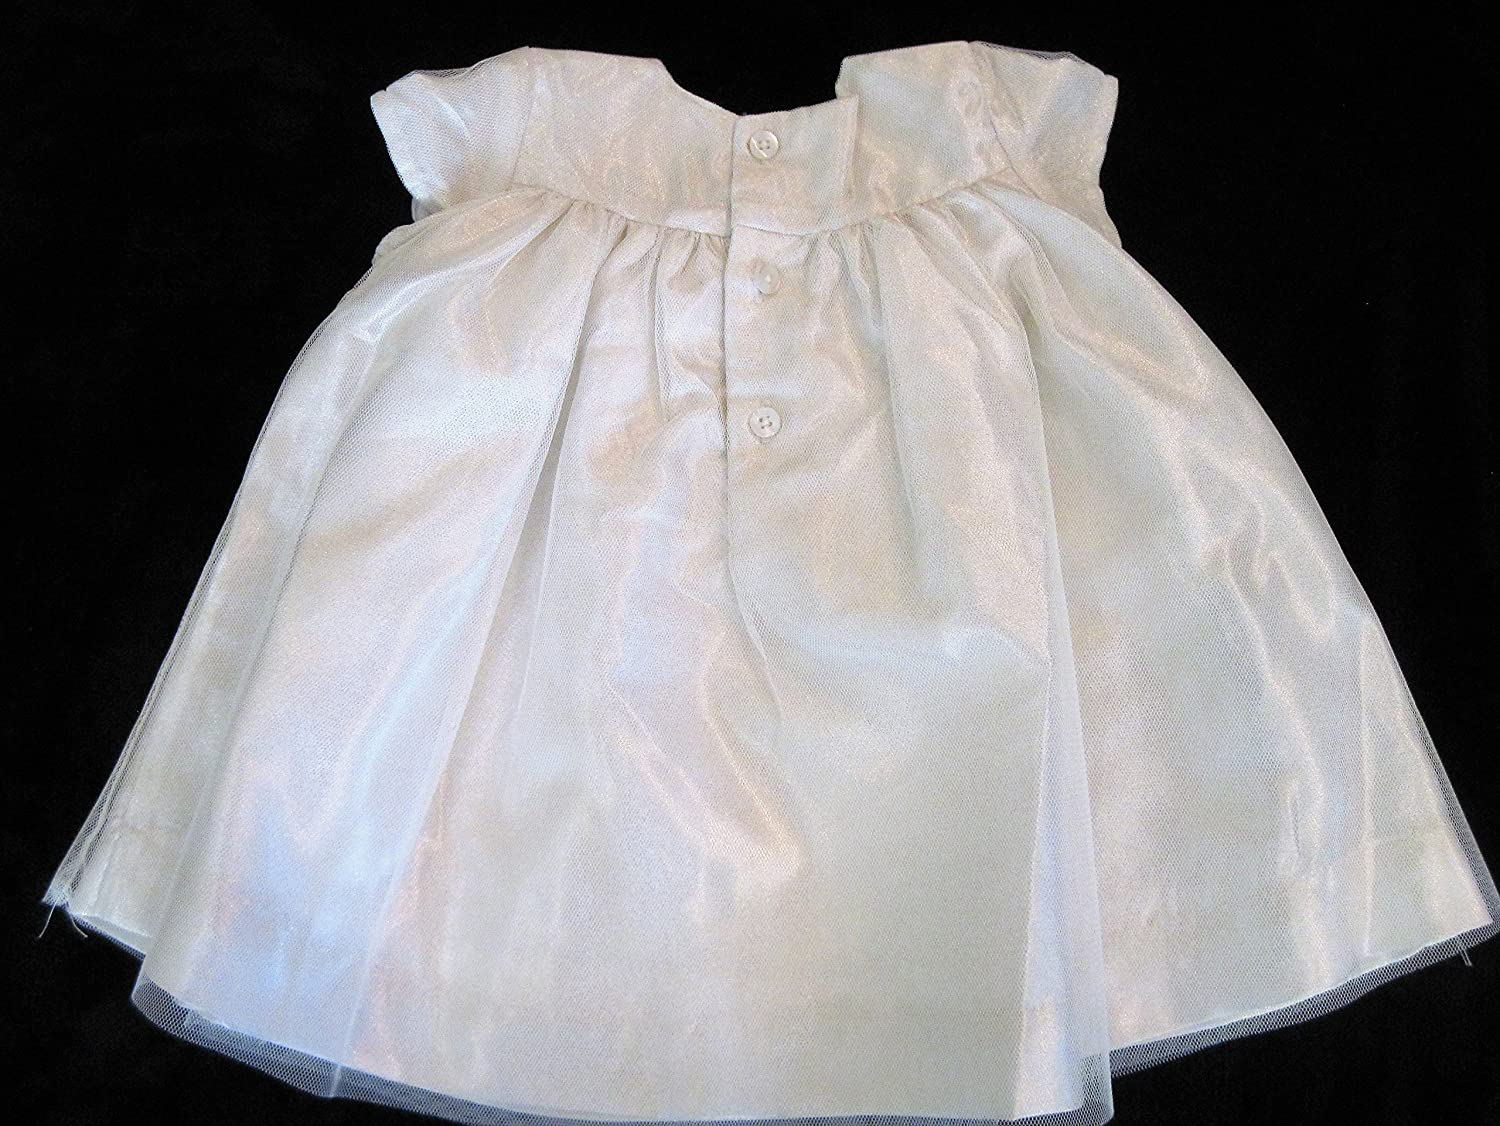 5388a3a33 Amazon.com: Edgehill Collection Shimmery Ivory Smocked Baby Dress (3m):  Clothing